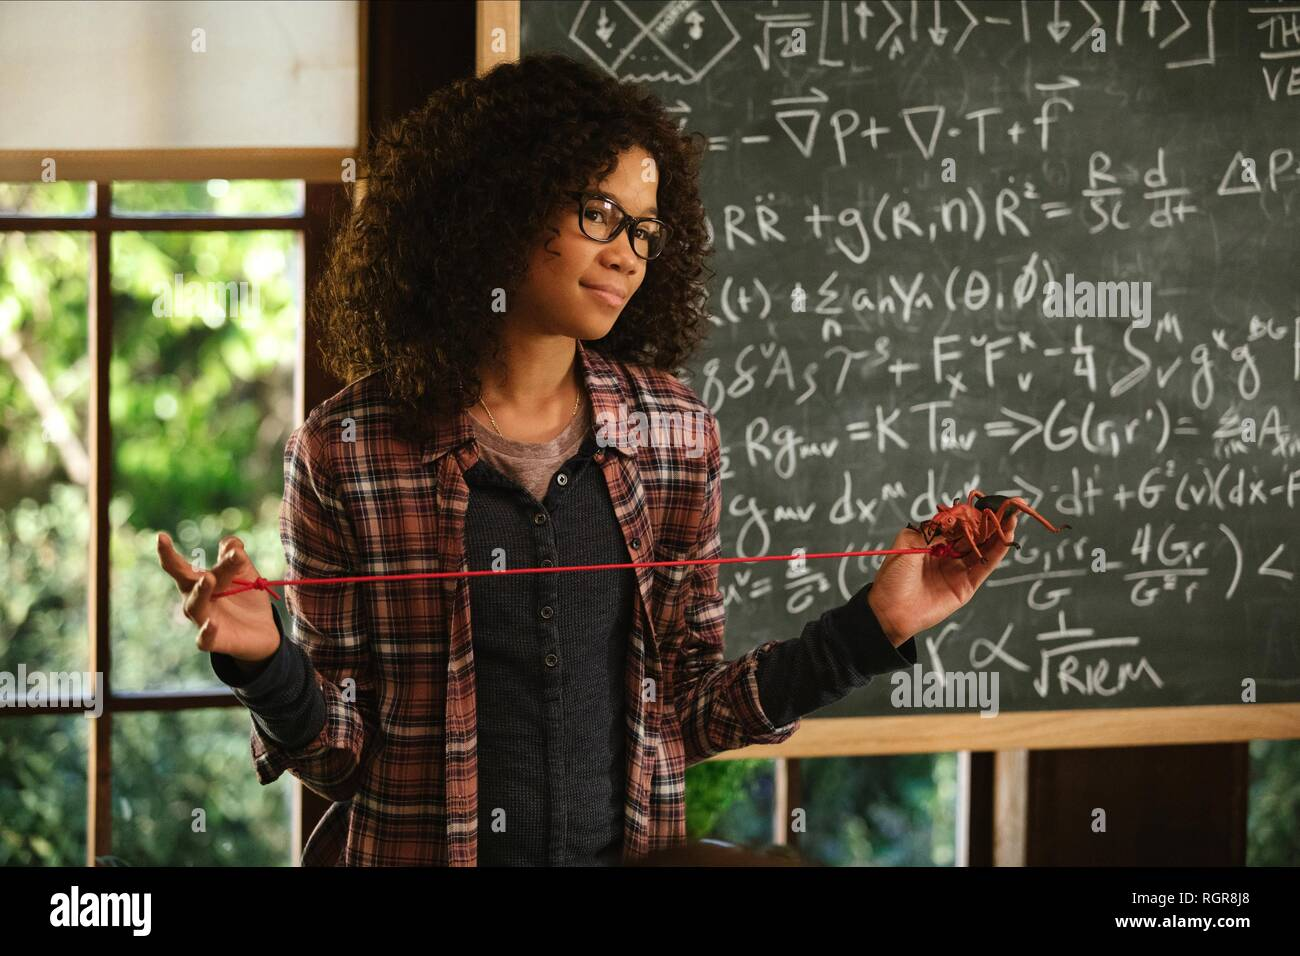 STORM REID A WRINKLE IN TIME (2018) - Stock Image